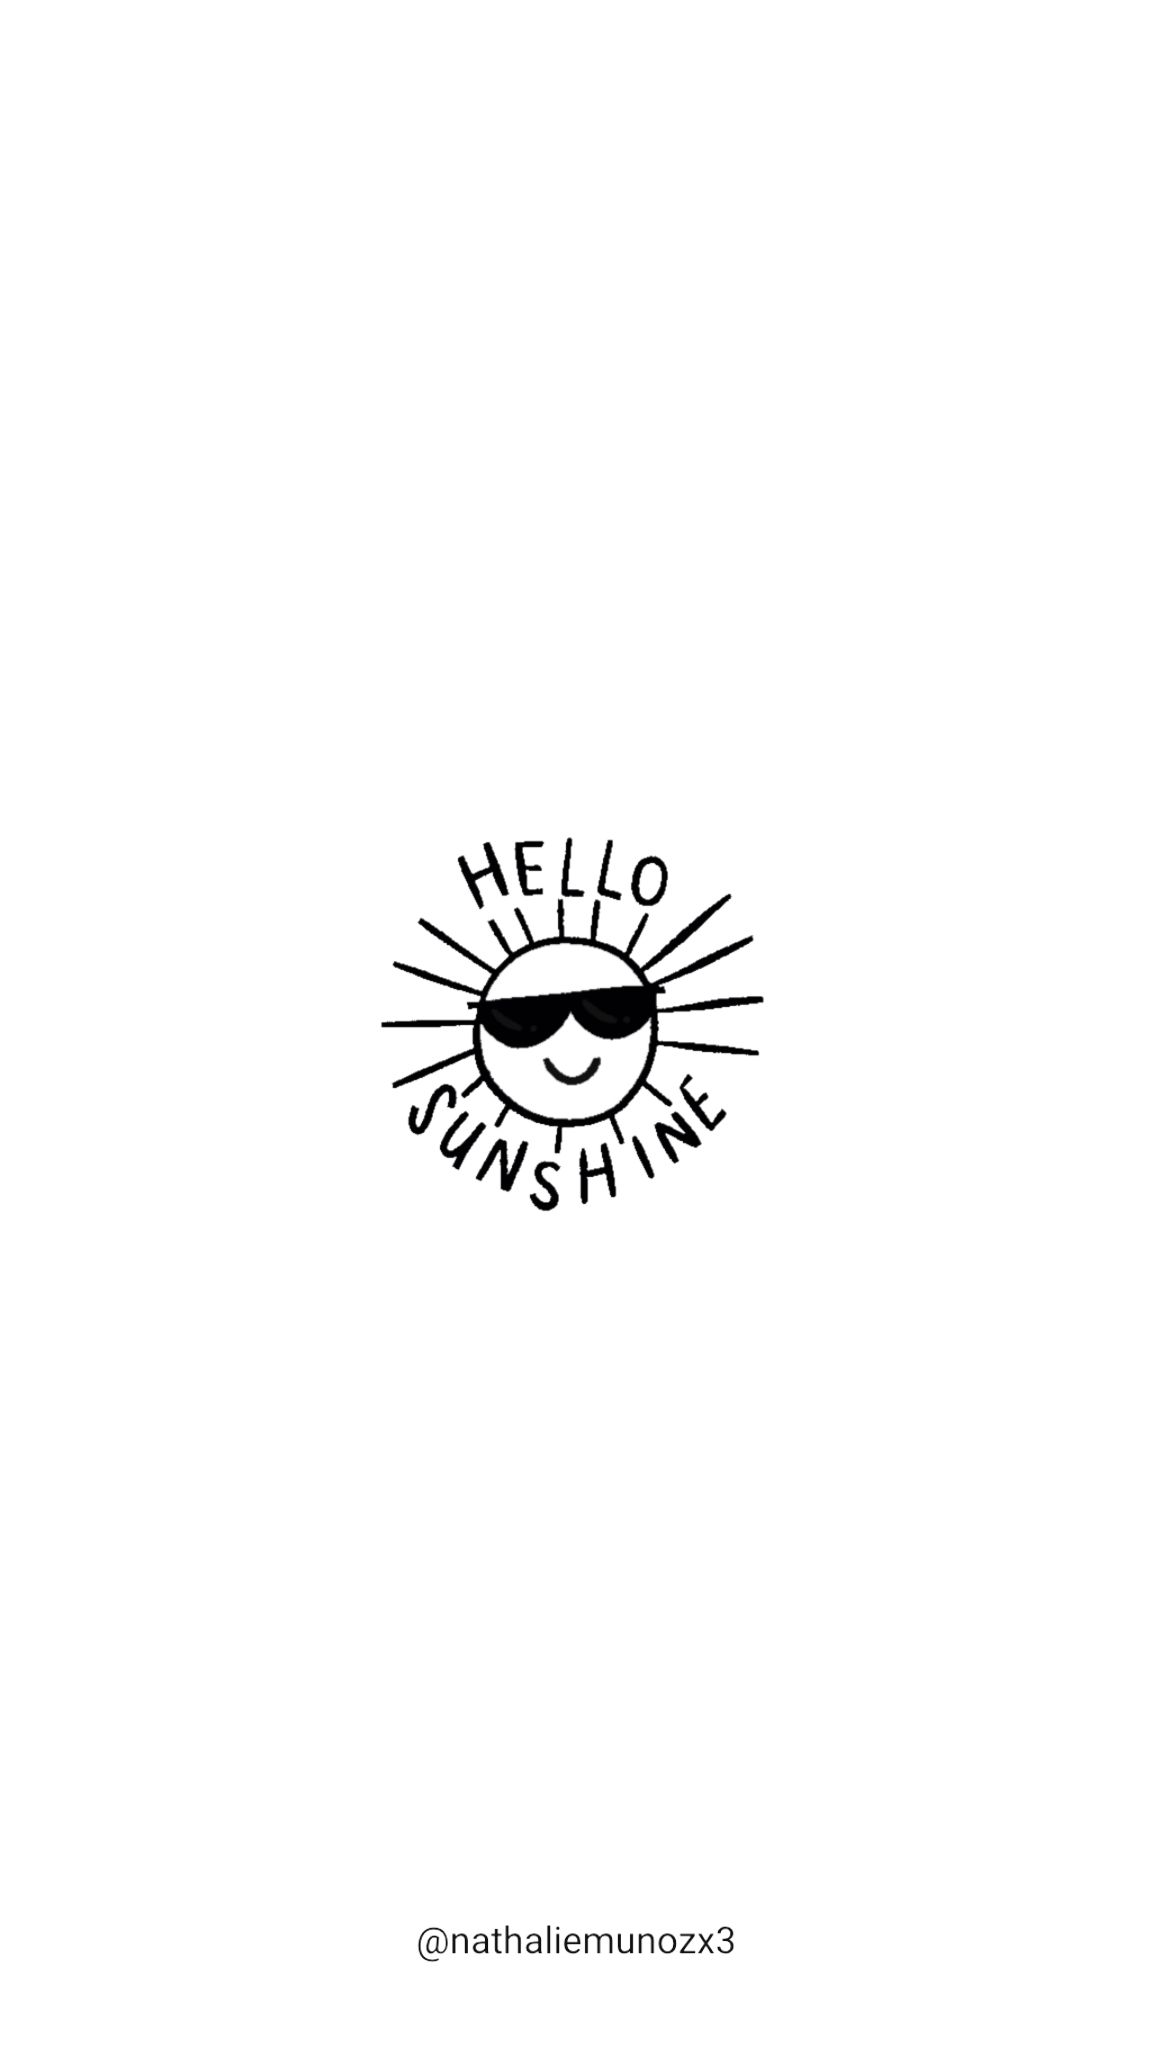 hello sunshine instagram highlight summer instagram summer highlights instagram hello sunshine instagram highlight